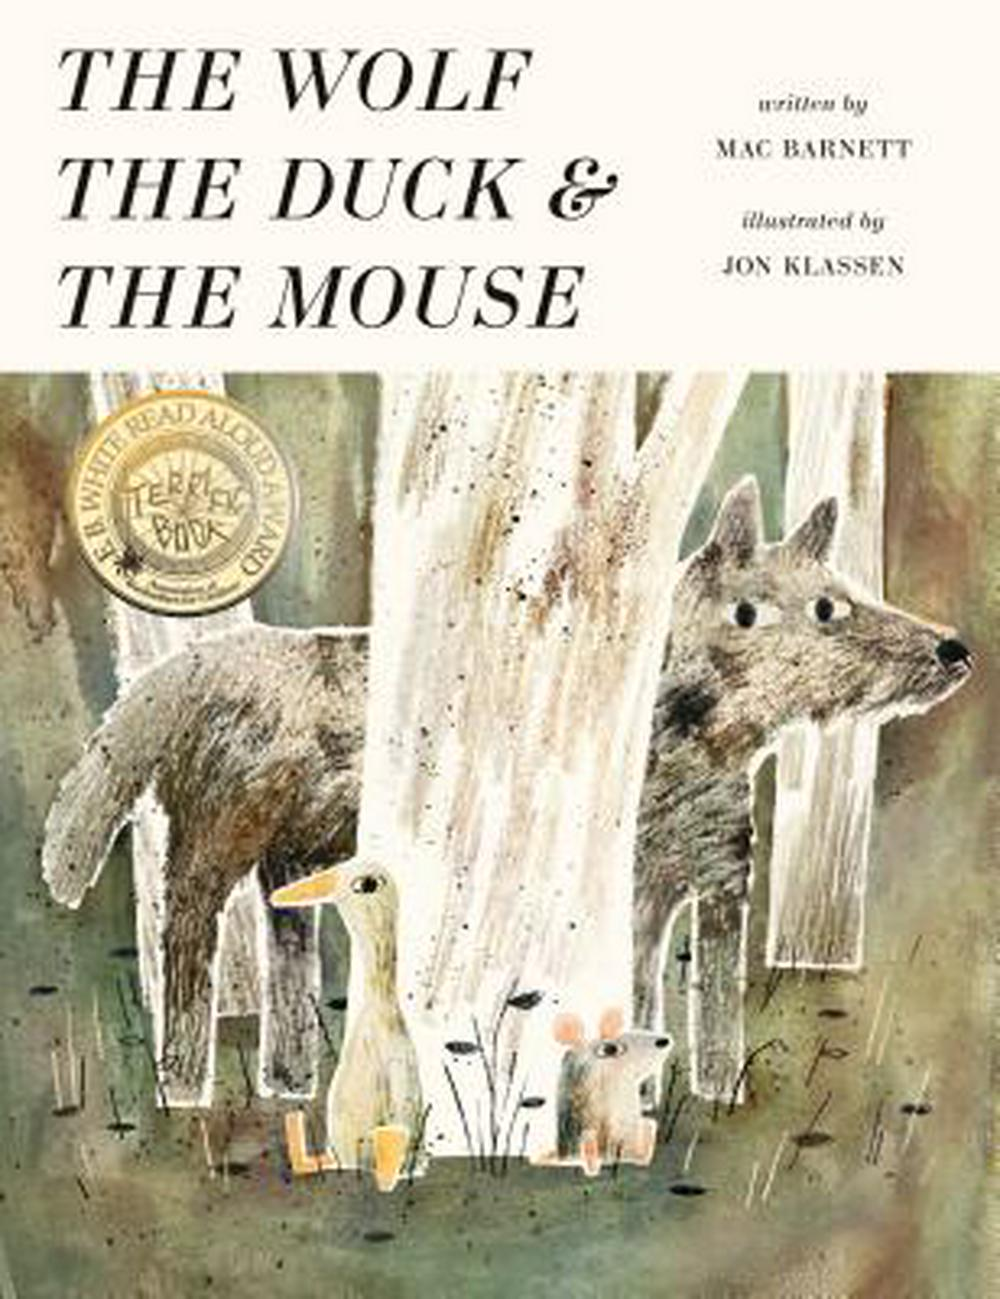 The Wolf, the Duck, and the Mouse by Mac Barnett, Jon Klassen, ISBN: 9780763677541